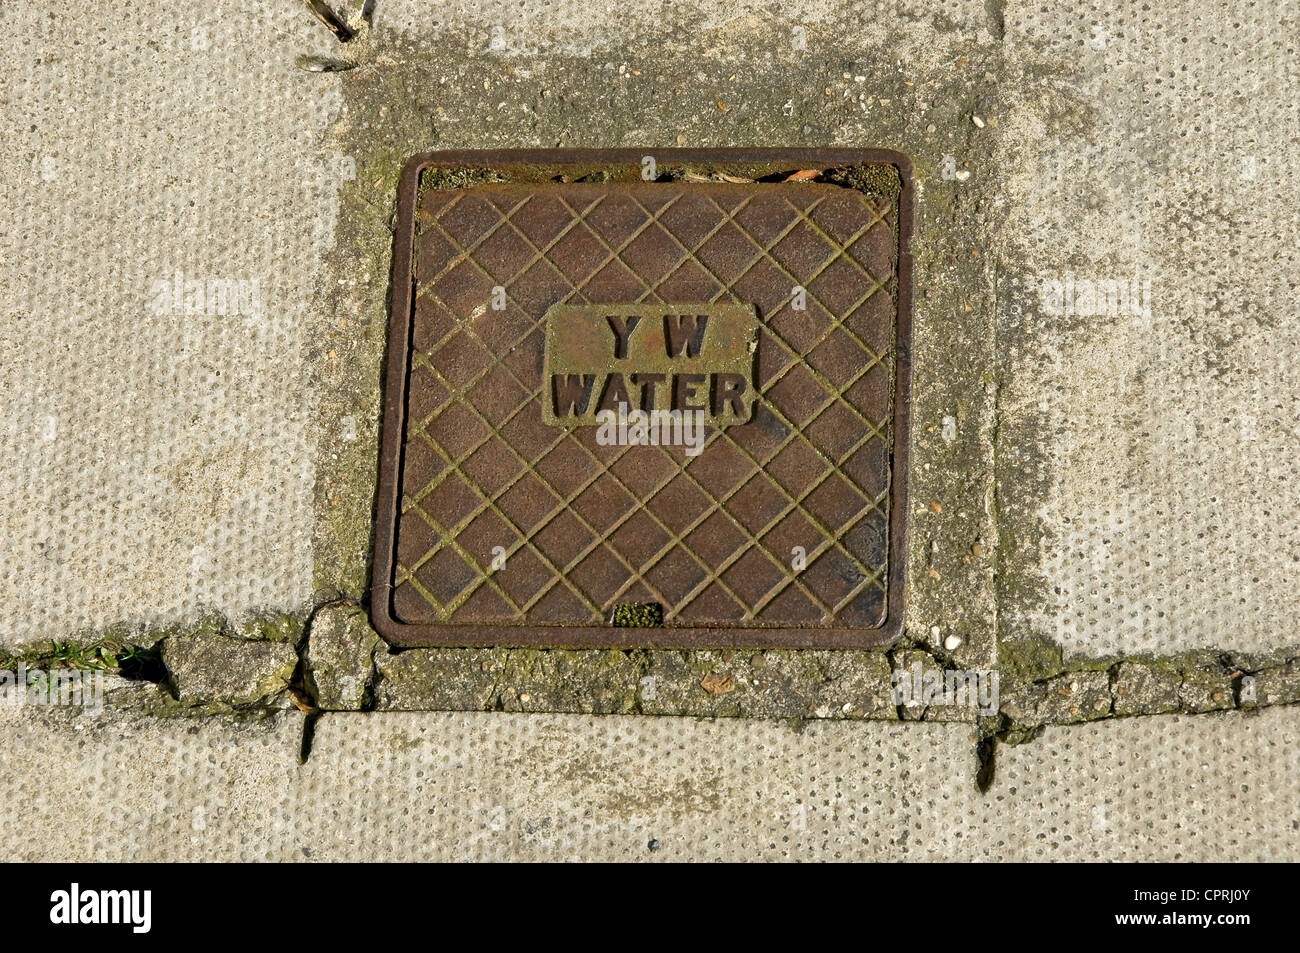 Water main access point set in the pavement North Yorkshire England UK United Kingdom GB Great Britain - Stock Image